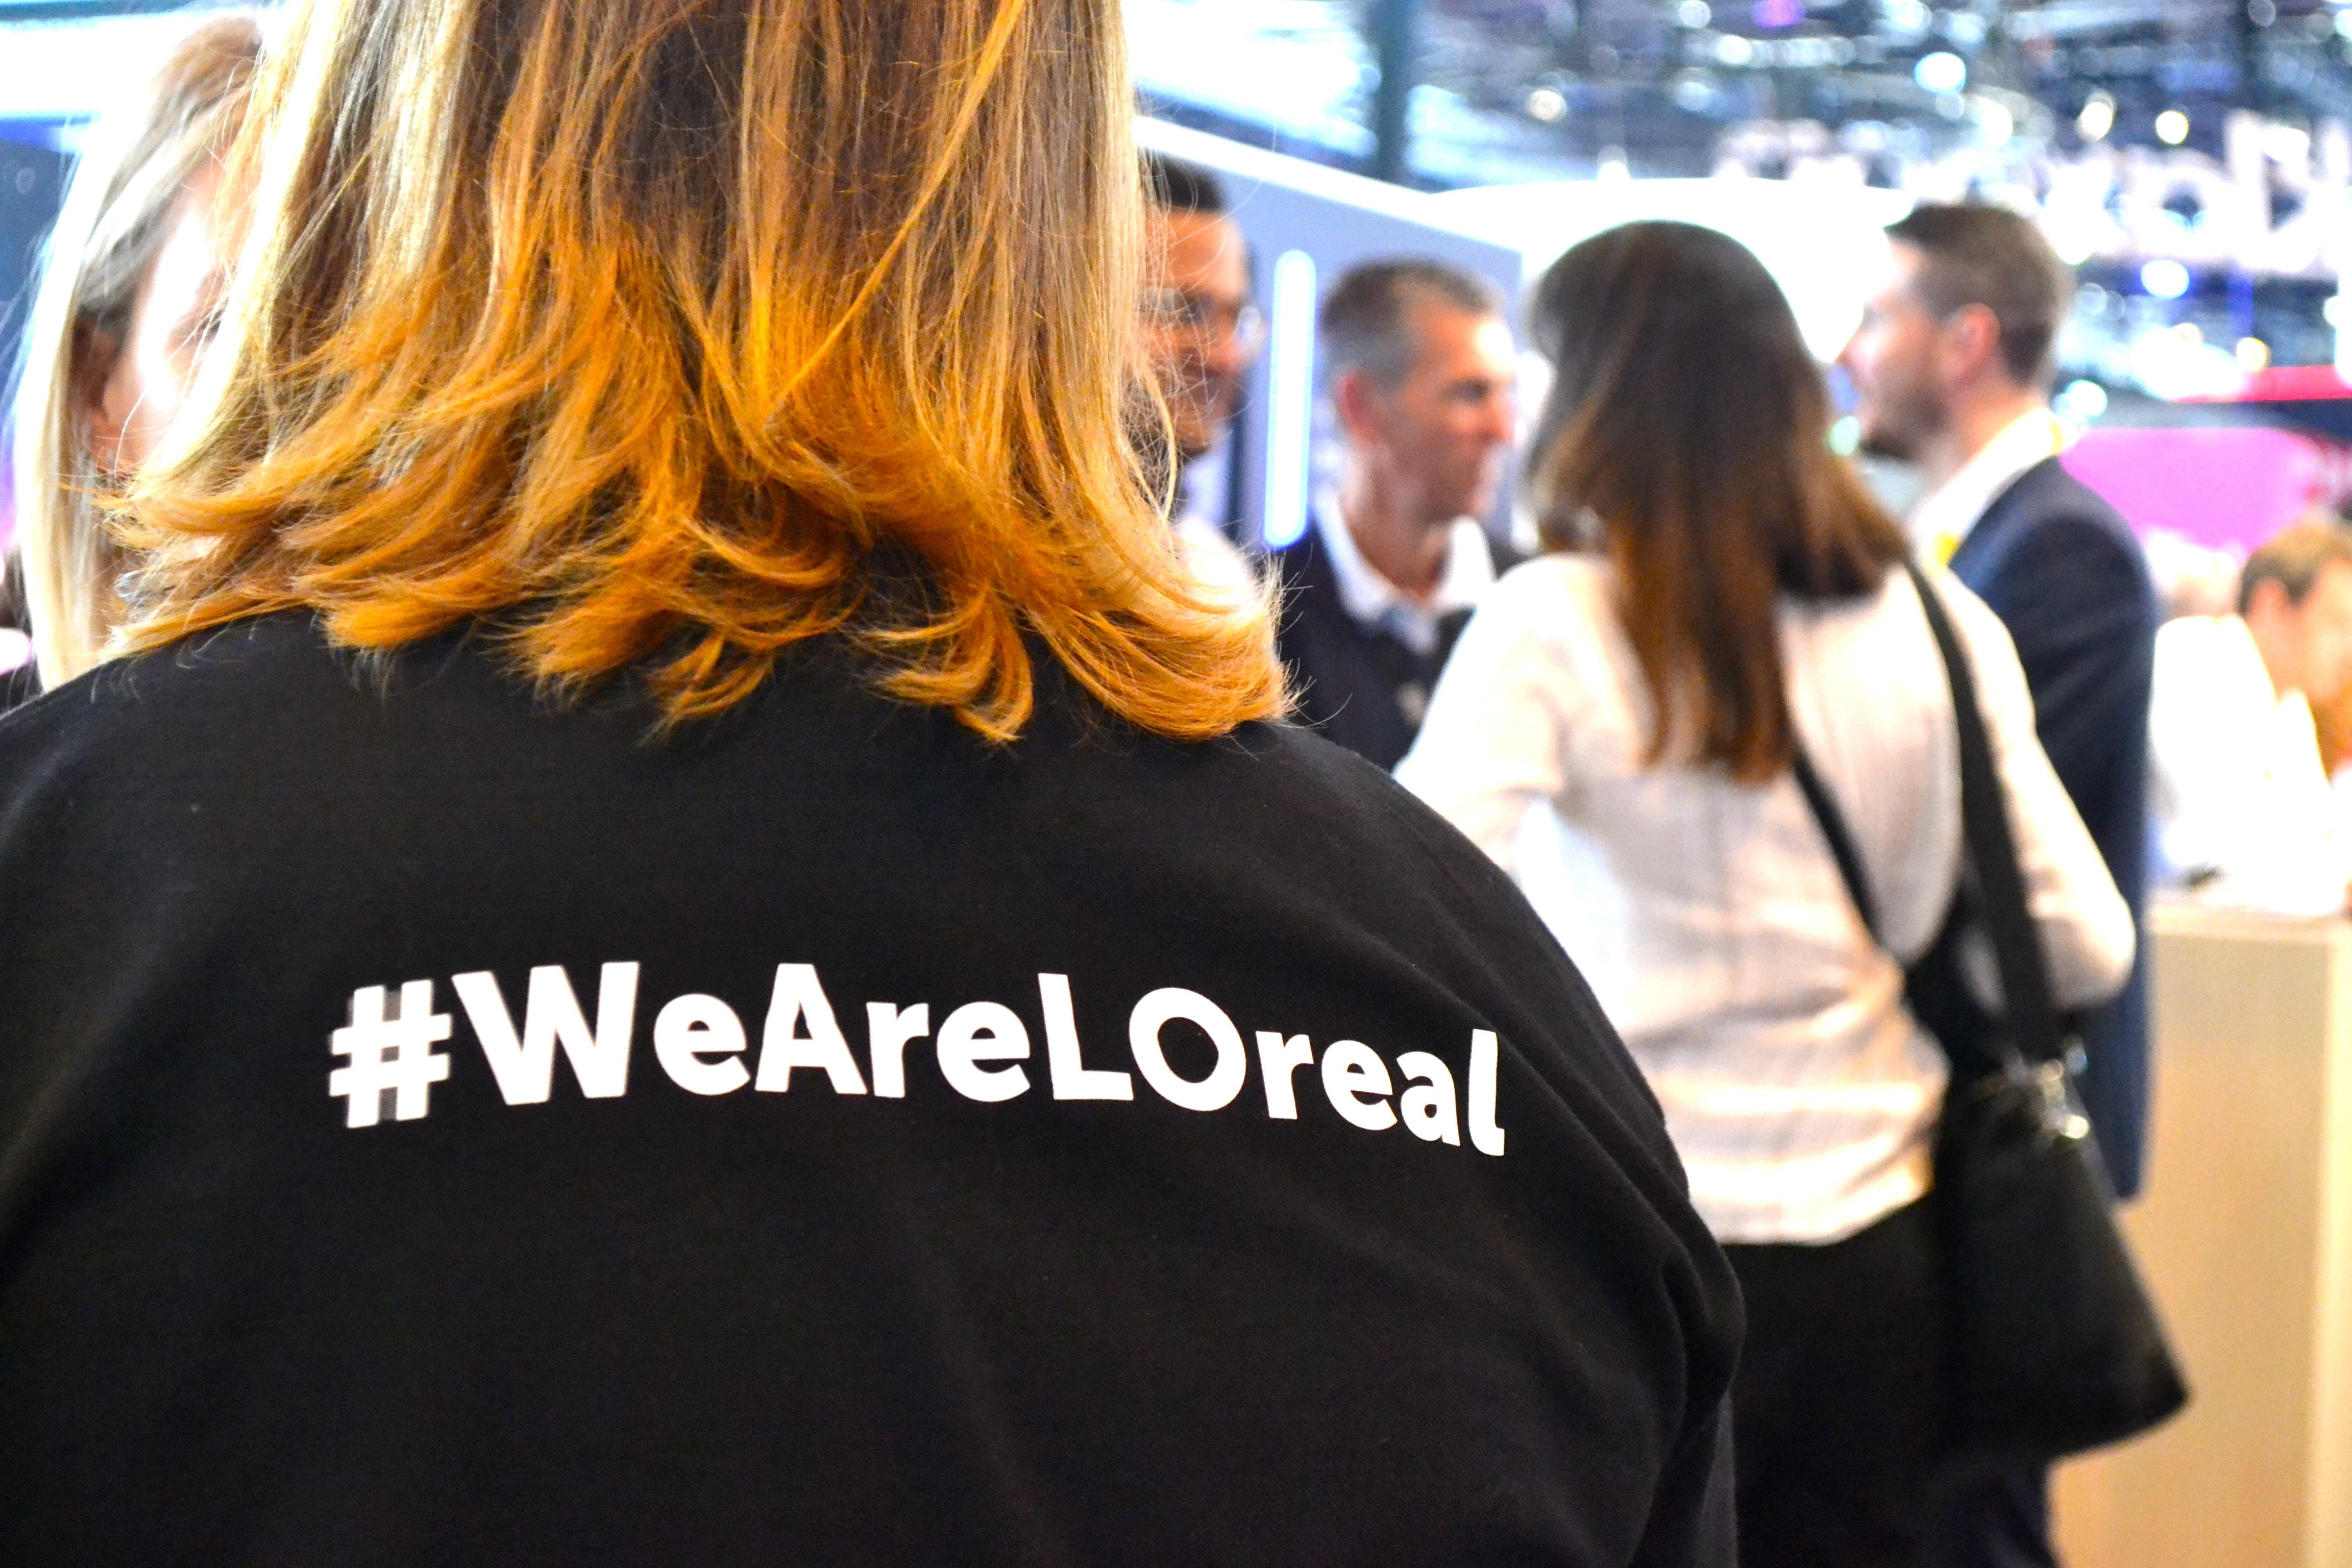 Woman with a Weareloreal tshirt